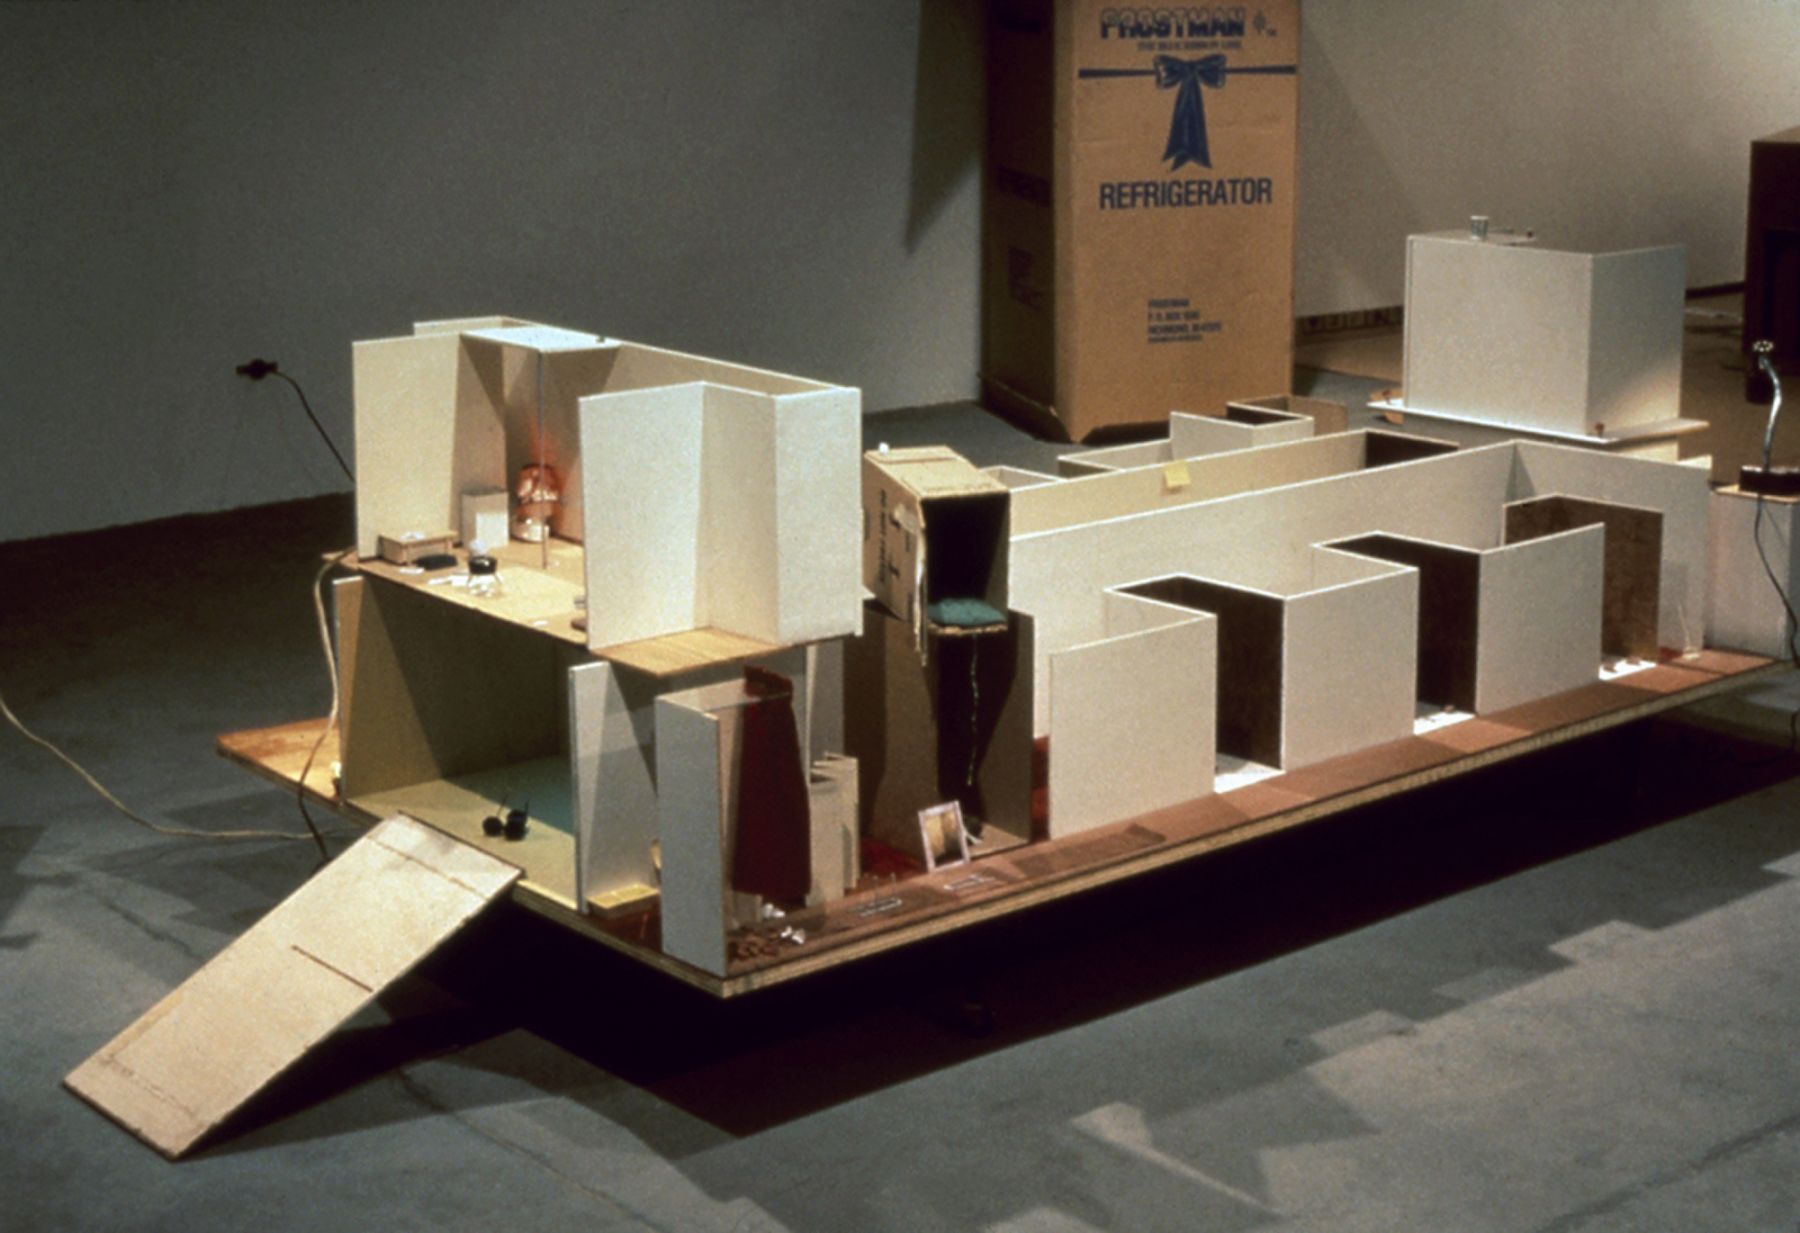 Julie Becker, Researchers, Residents, a Place to Rest, 1996